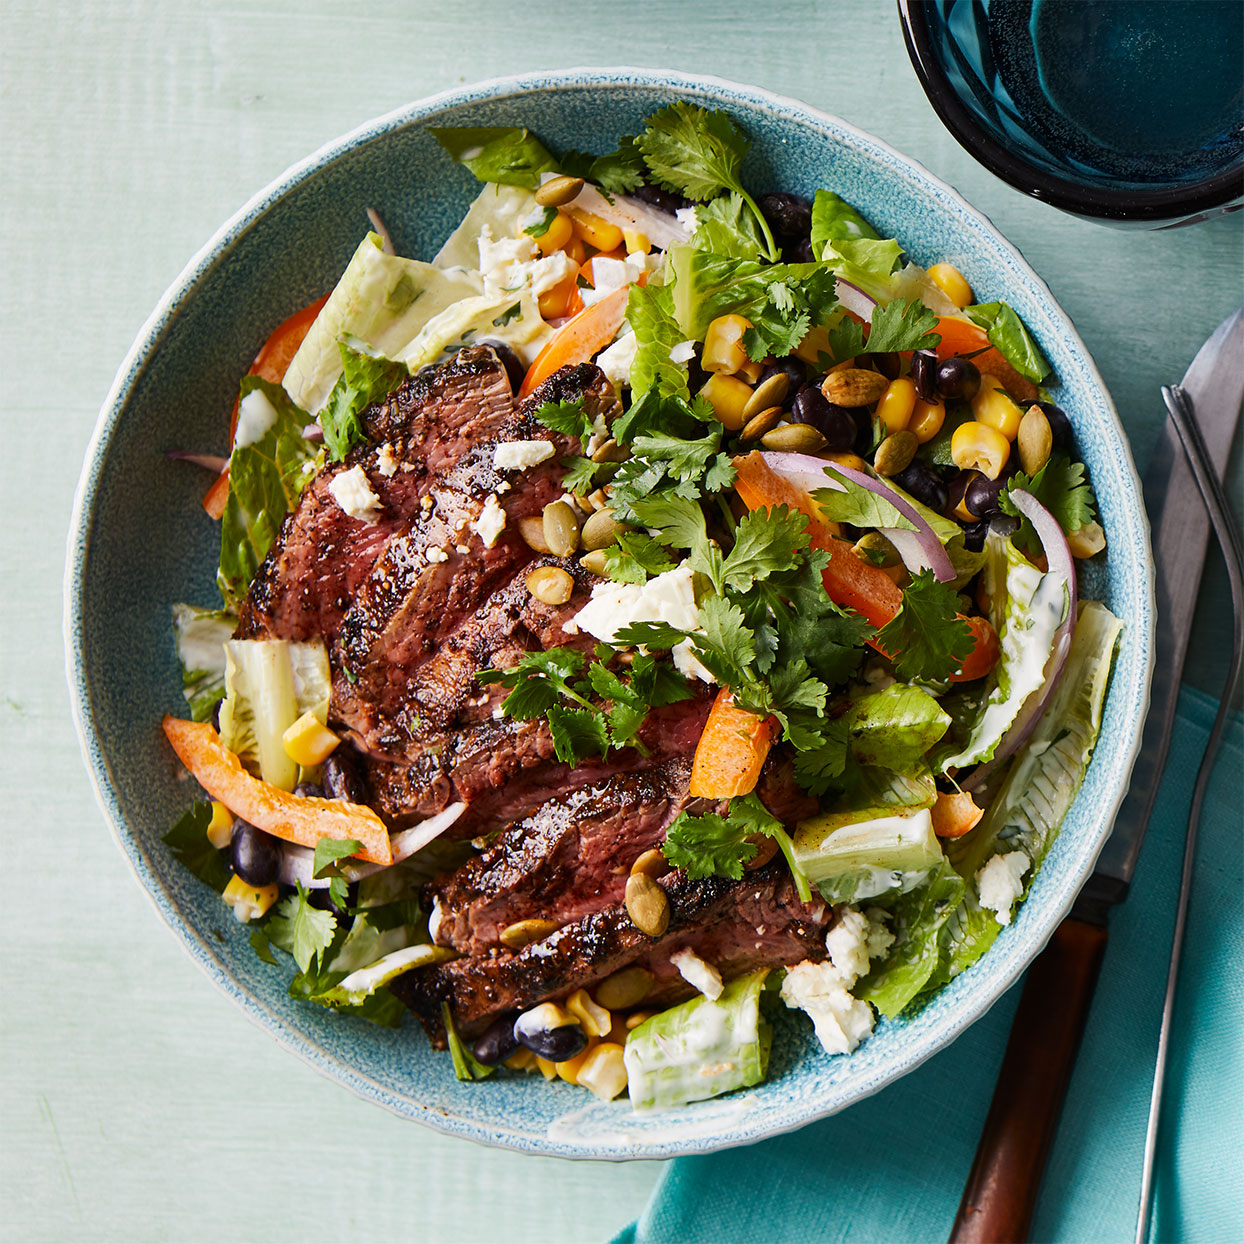 Transform steak into a nutritious meal by serving it atop this lively Southwest-inspired salad recipe. If you make the dressing when you marinate the steak, this meal comes together quickly.Source: Diabetic Living Magazine, Spring 2020